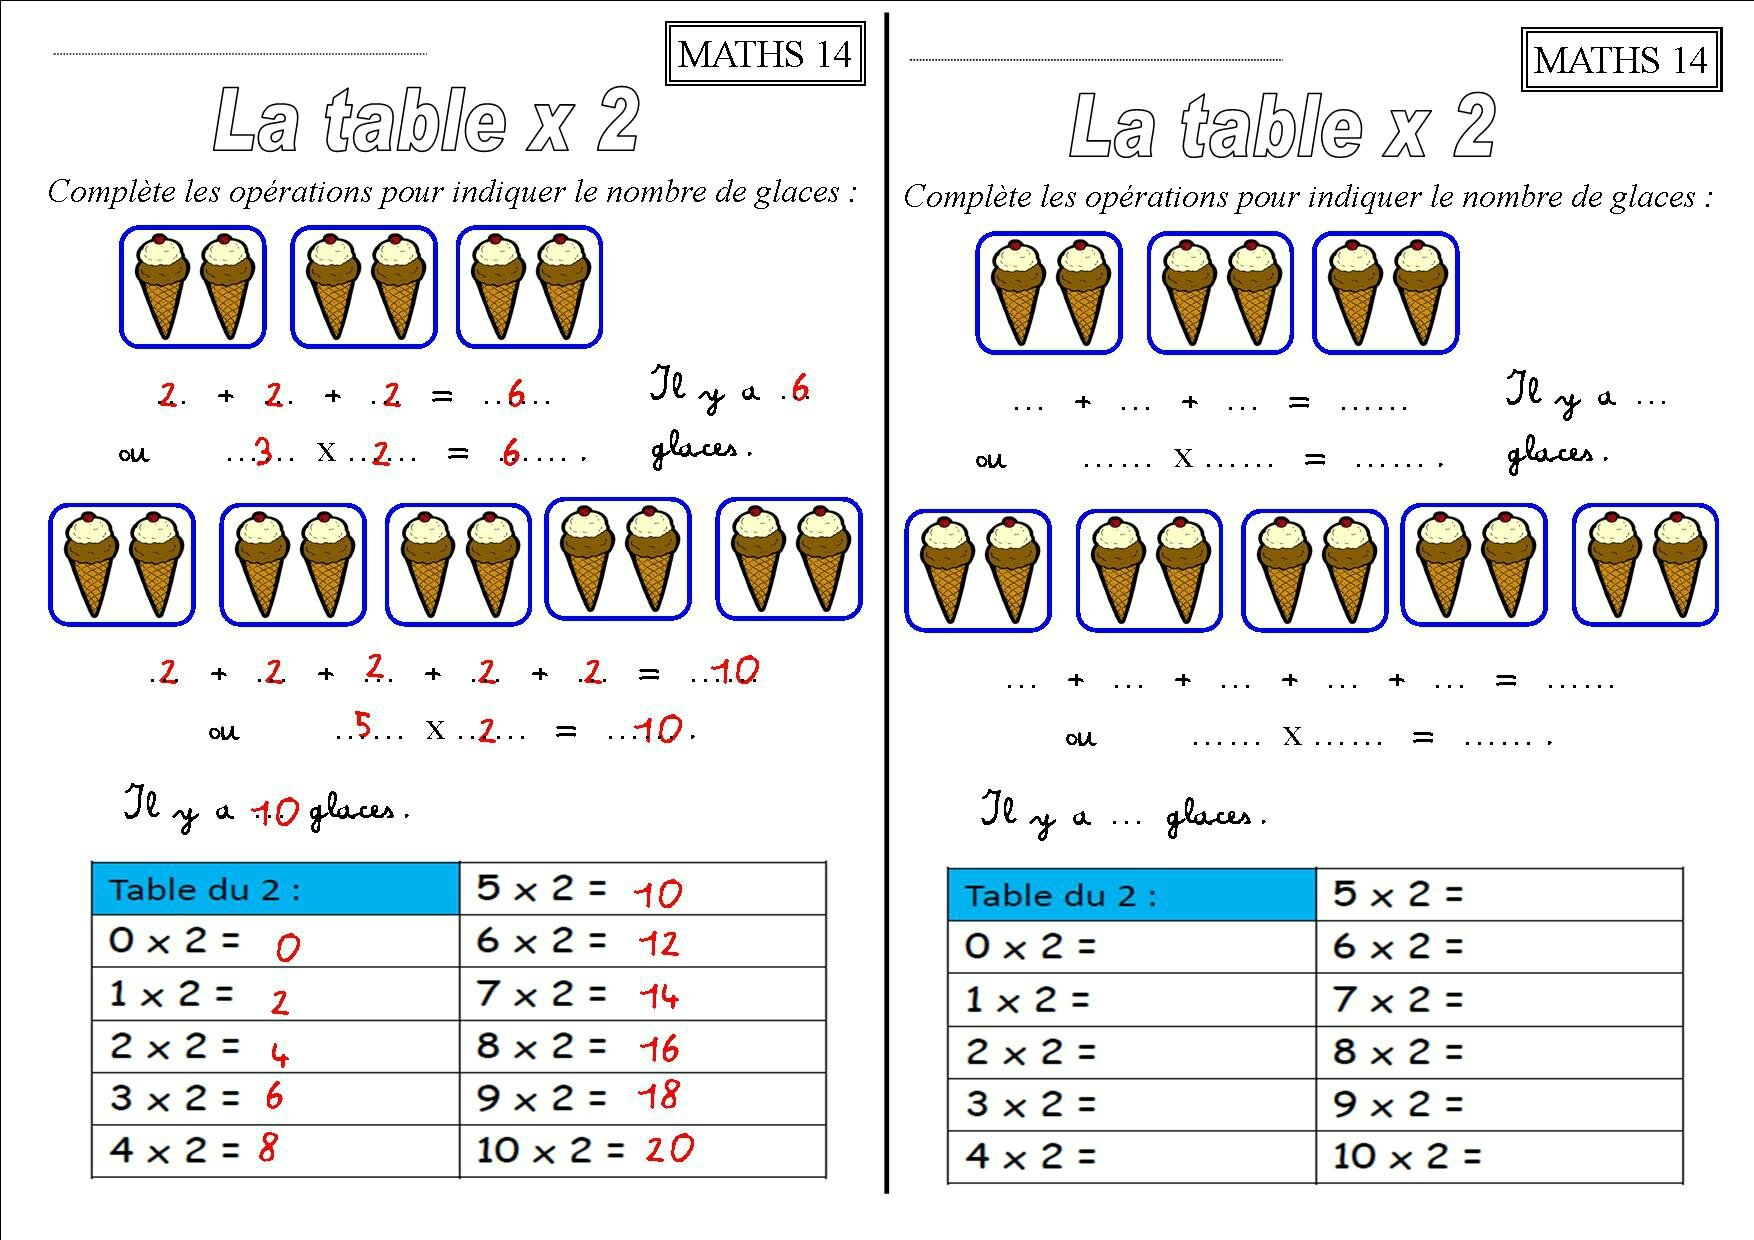 Les tables de multiplication ce1 x 2 x 3 x 4 x 5 x - Table de multiplication exercice ce2 ...